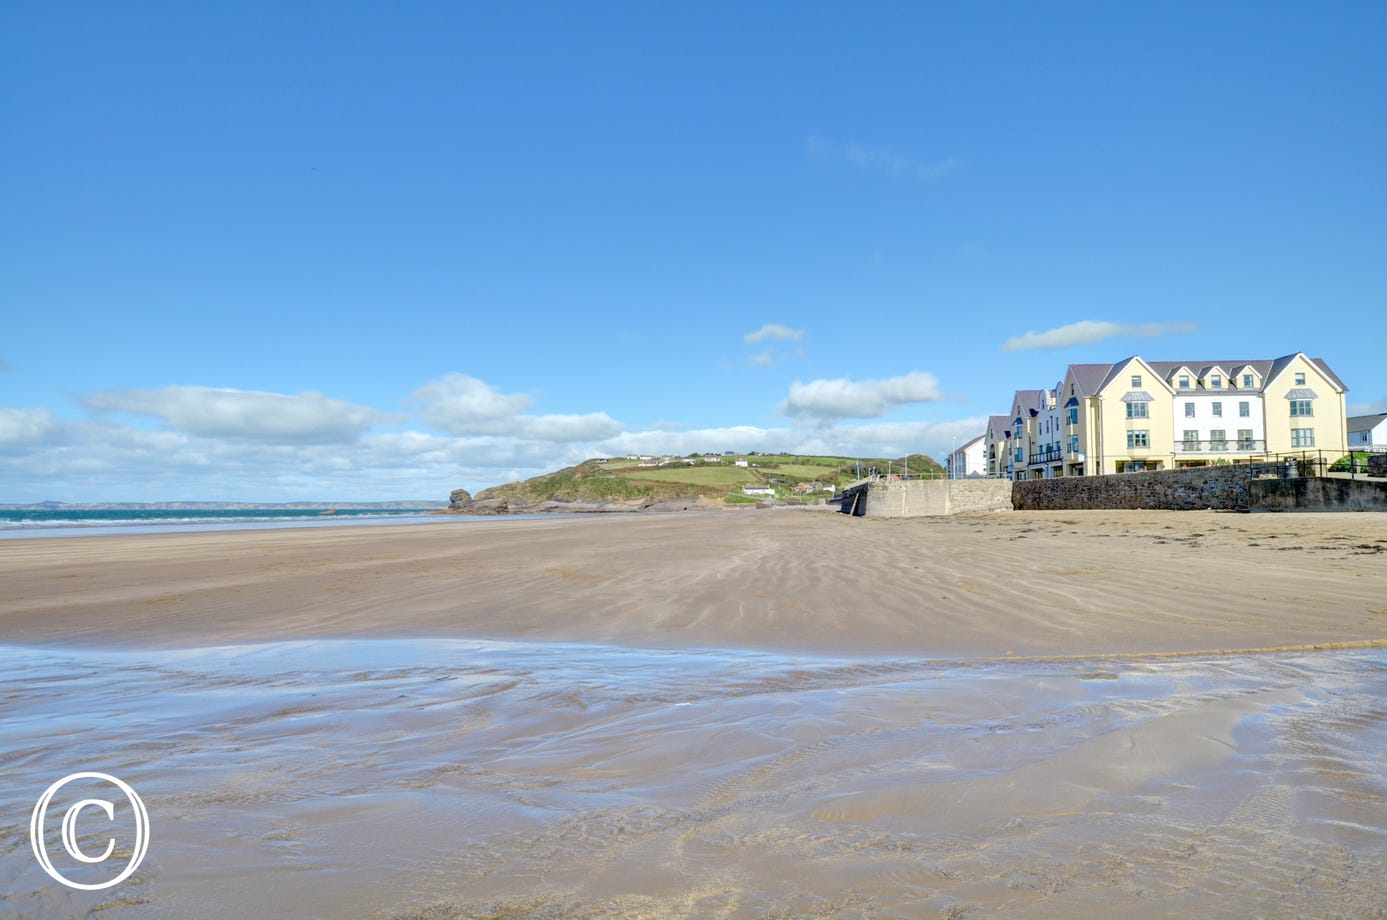 32 St Brides Bay View is an apartment located right on the seafront at Broad Haven